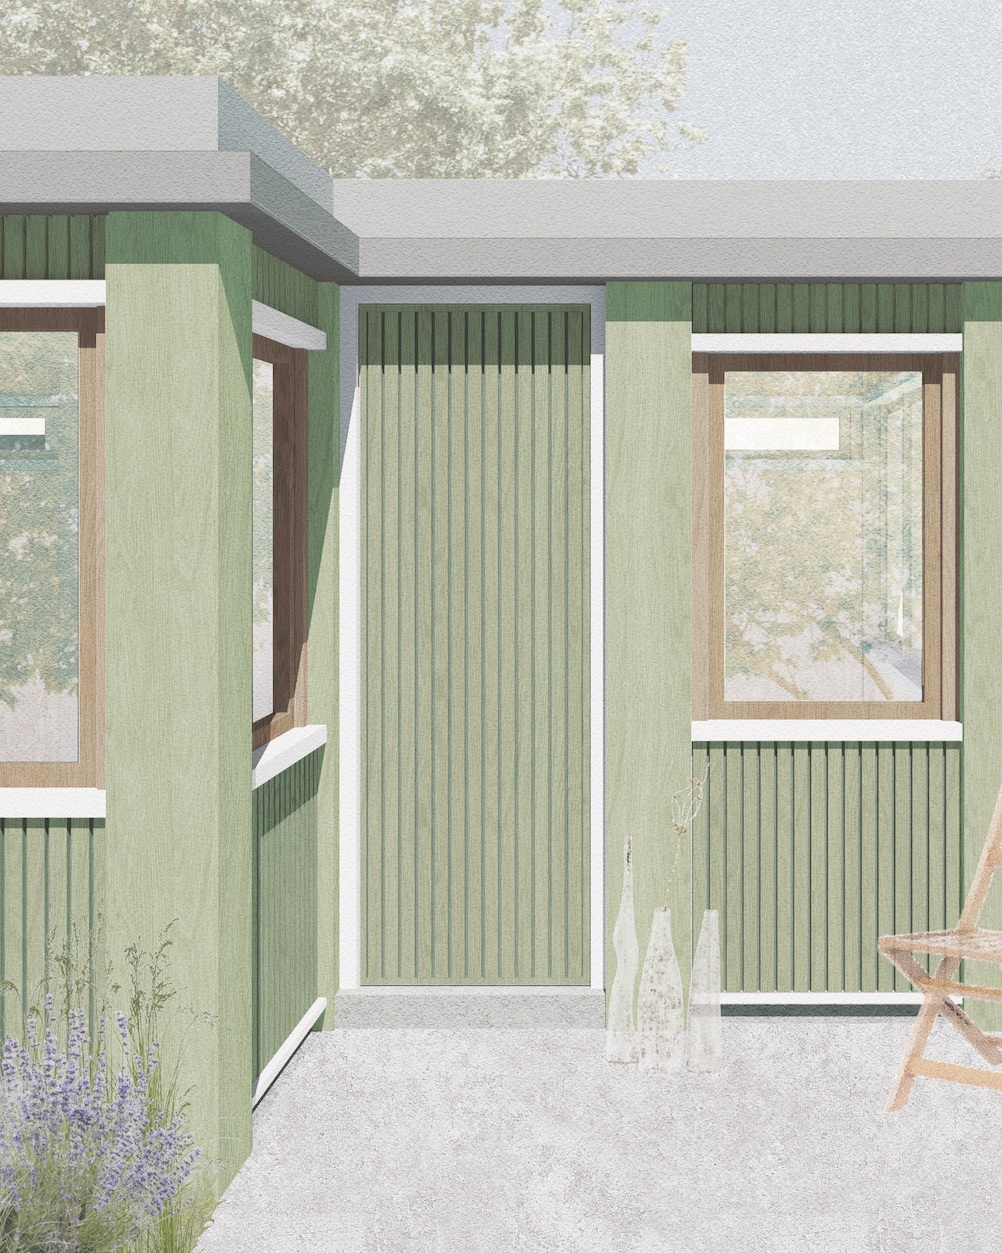 The Beeches.  Earley, Reading  Clad internally and externally in timber, this studio for a ceramist blends into its surrounds.